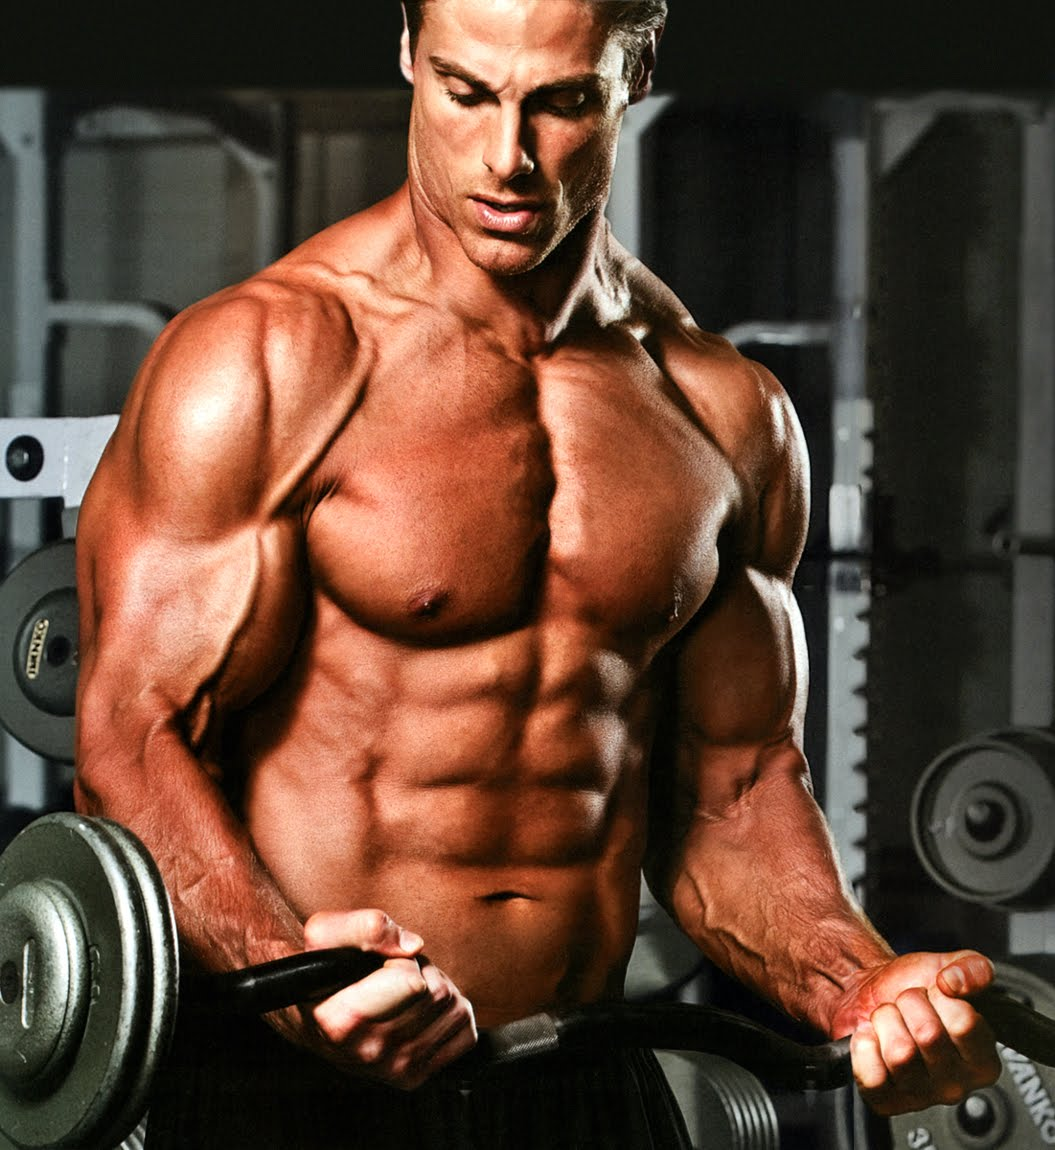 Bodybuilding Mens Health And Bodybuilding Page 2